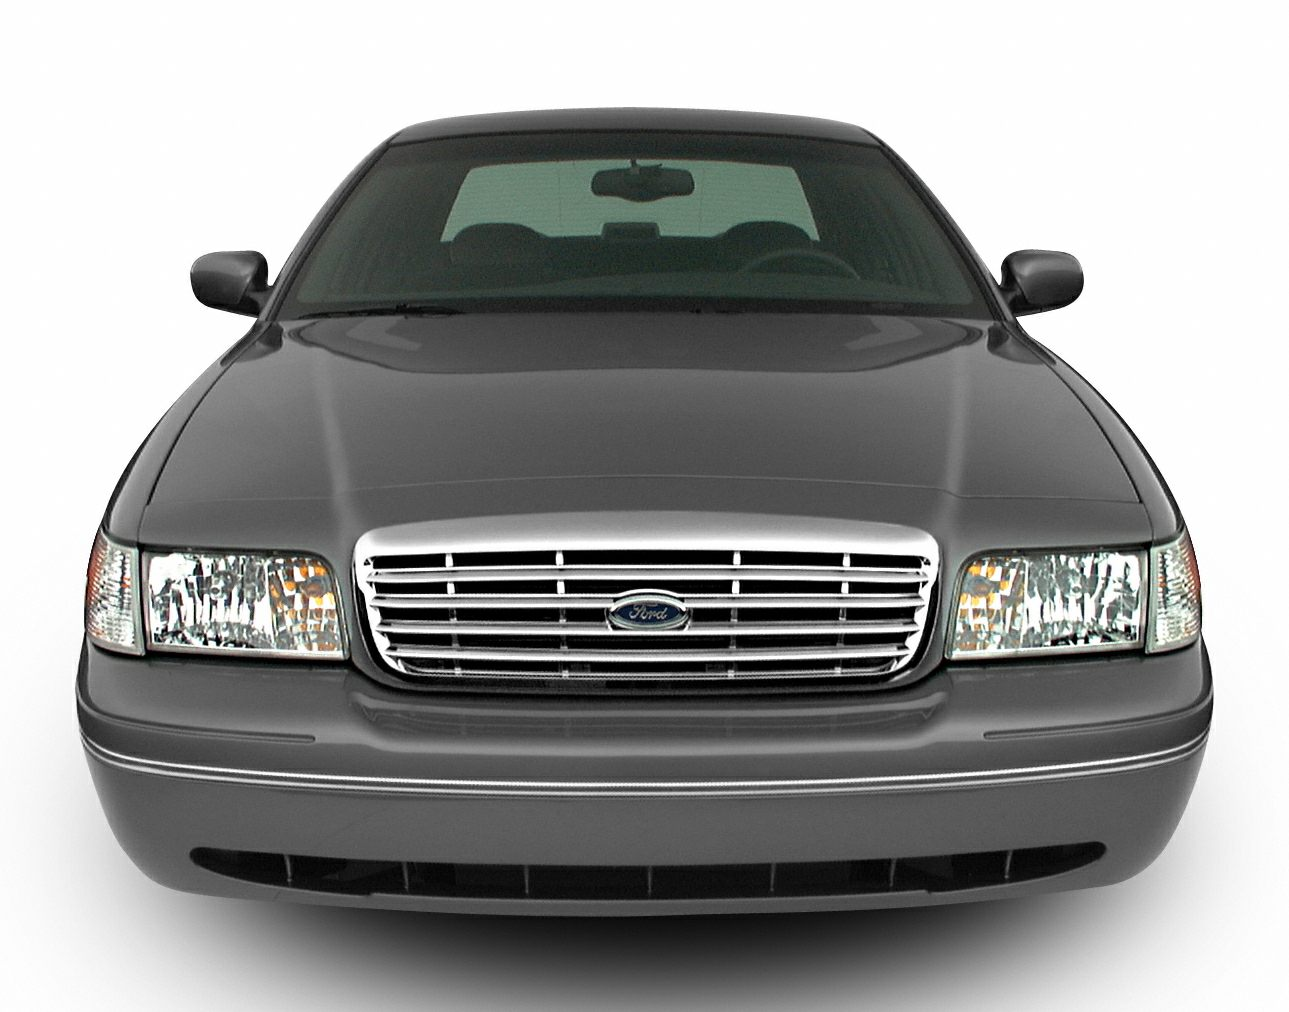 2000 Ford Crown Victoria Lx 4dr Sedan Pictures